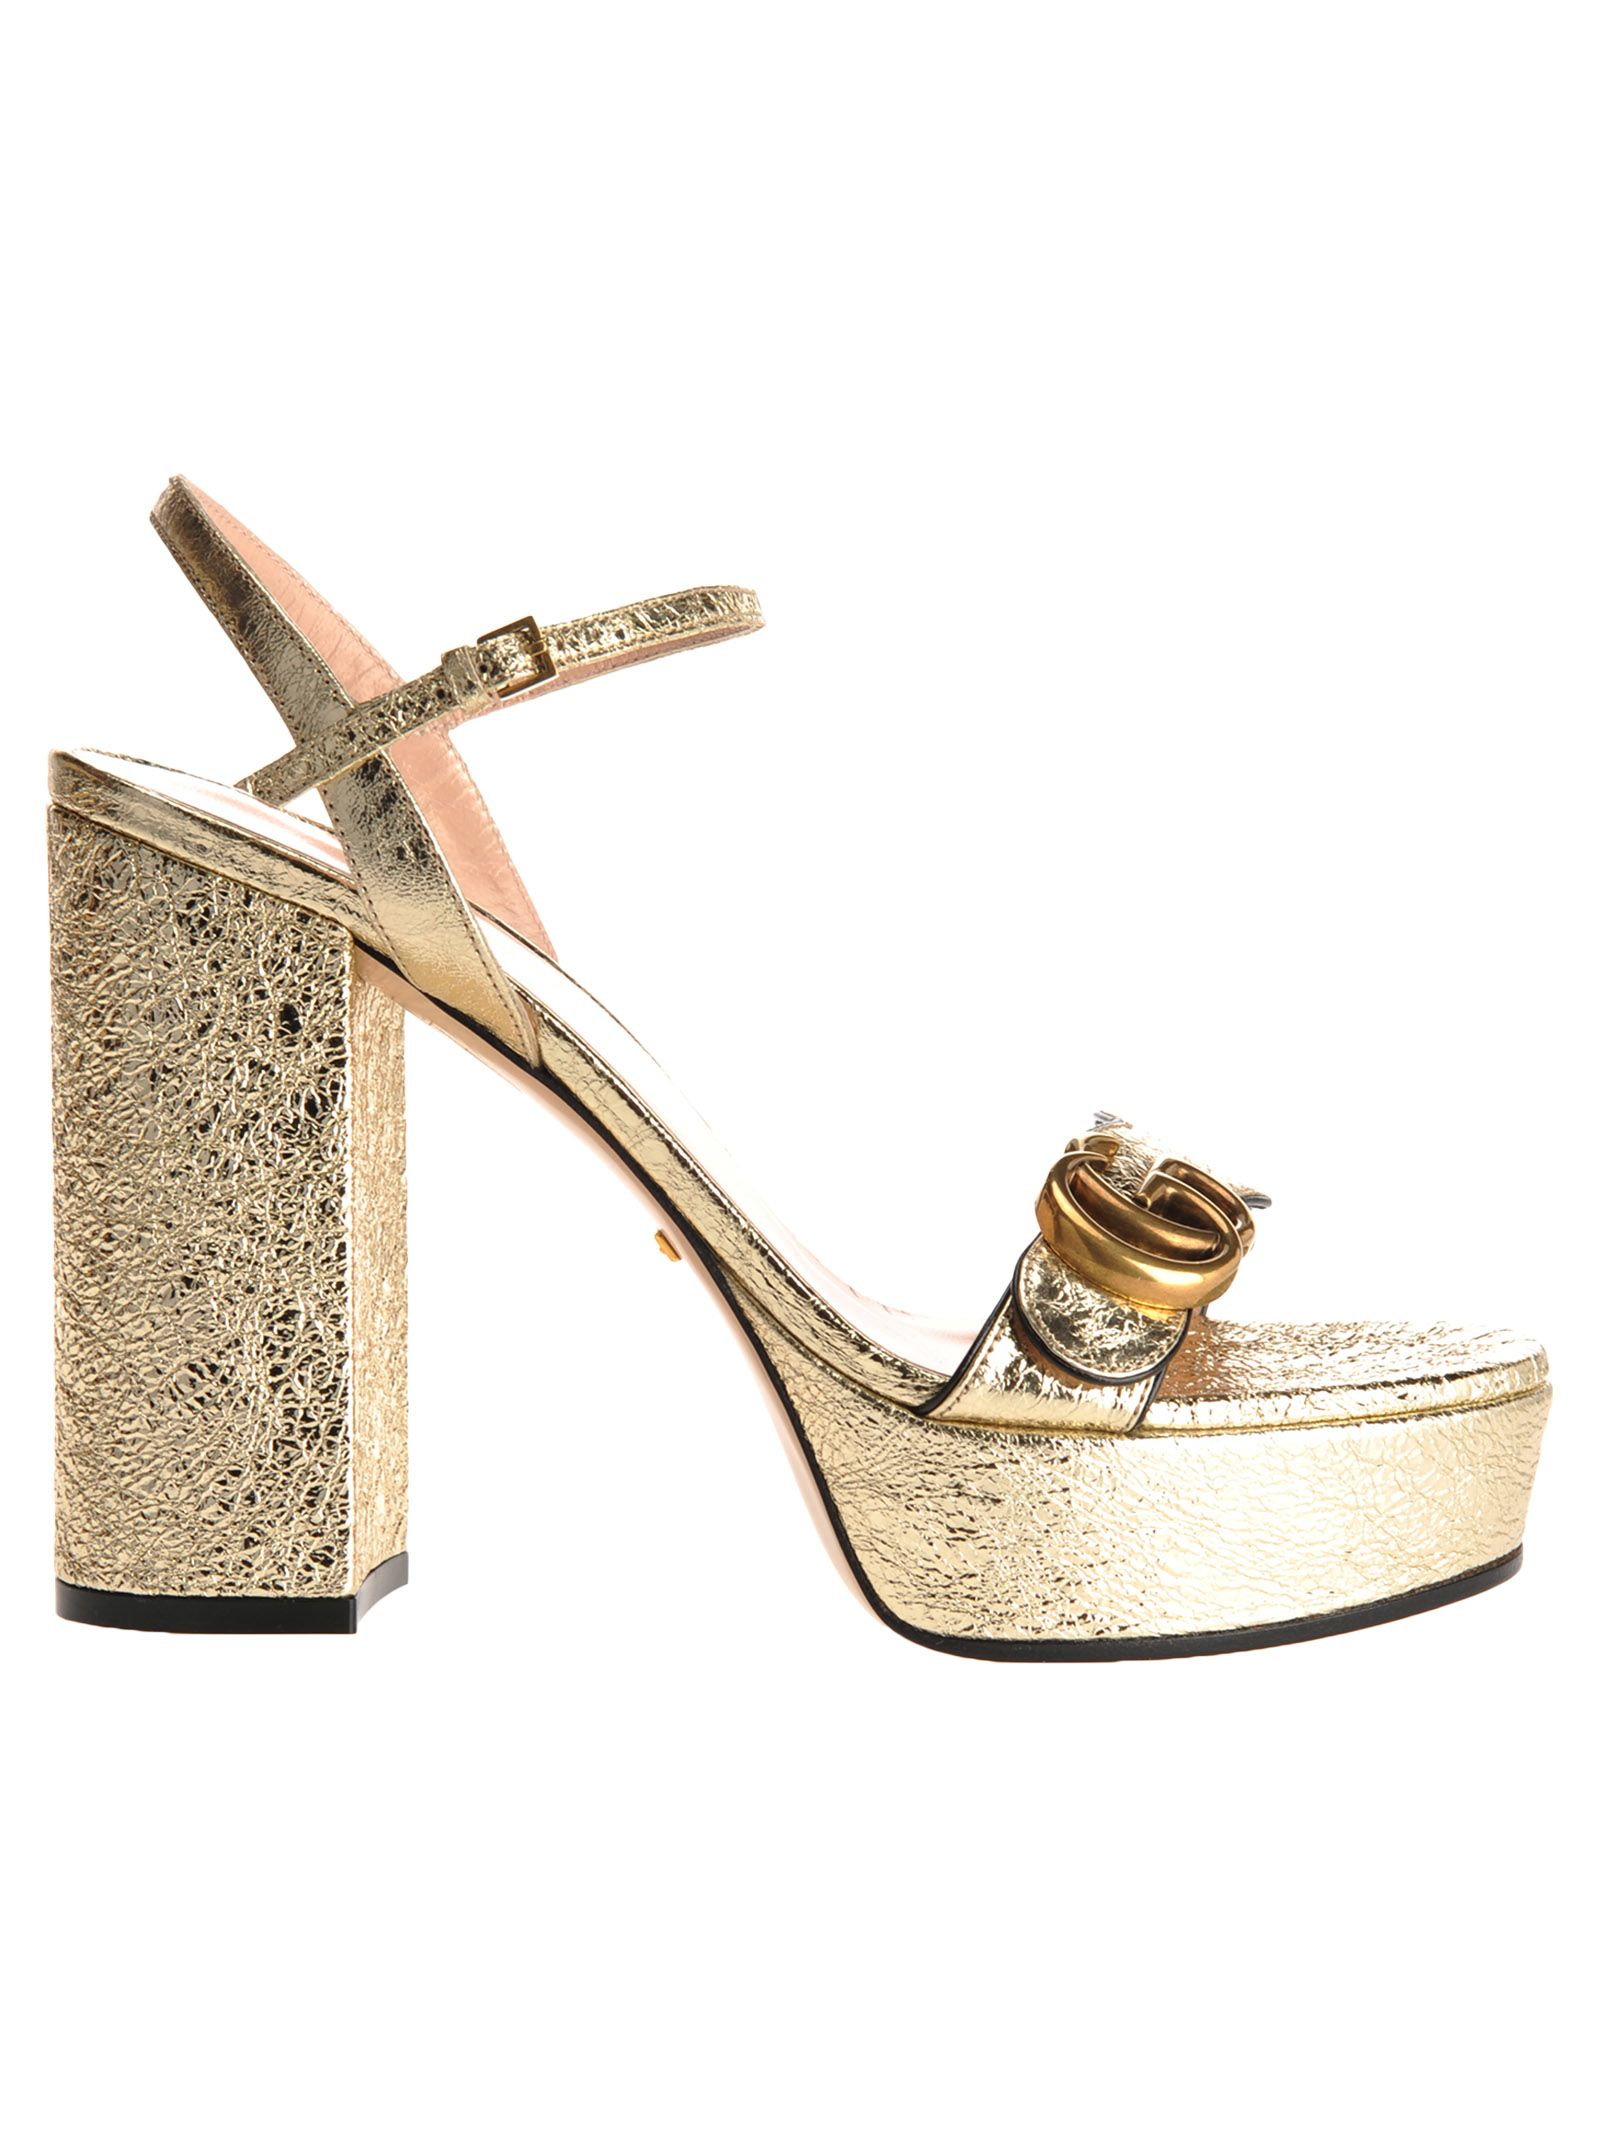 Gucci Platform Sandal With Double G In Gold